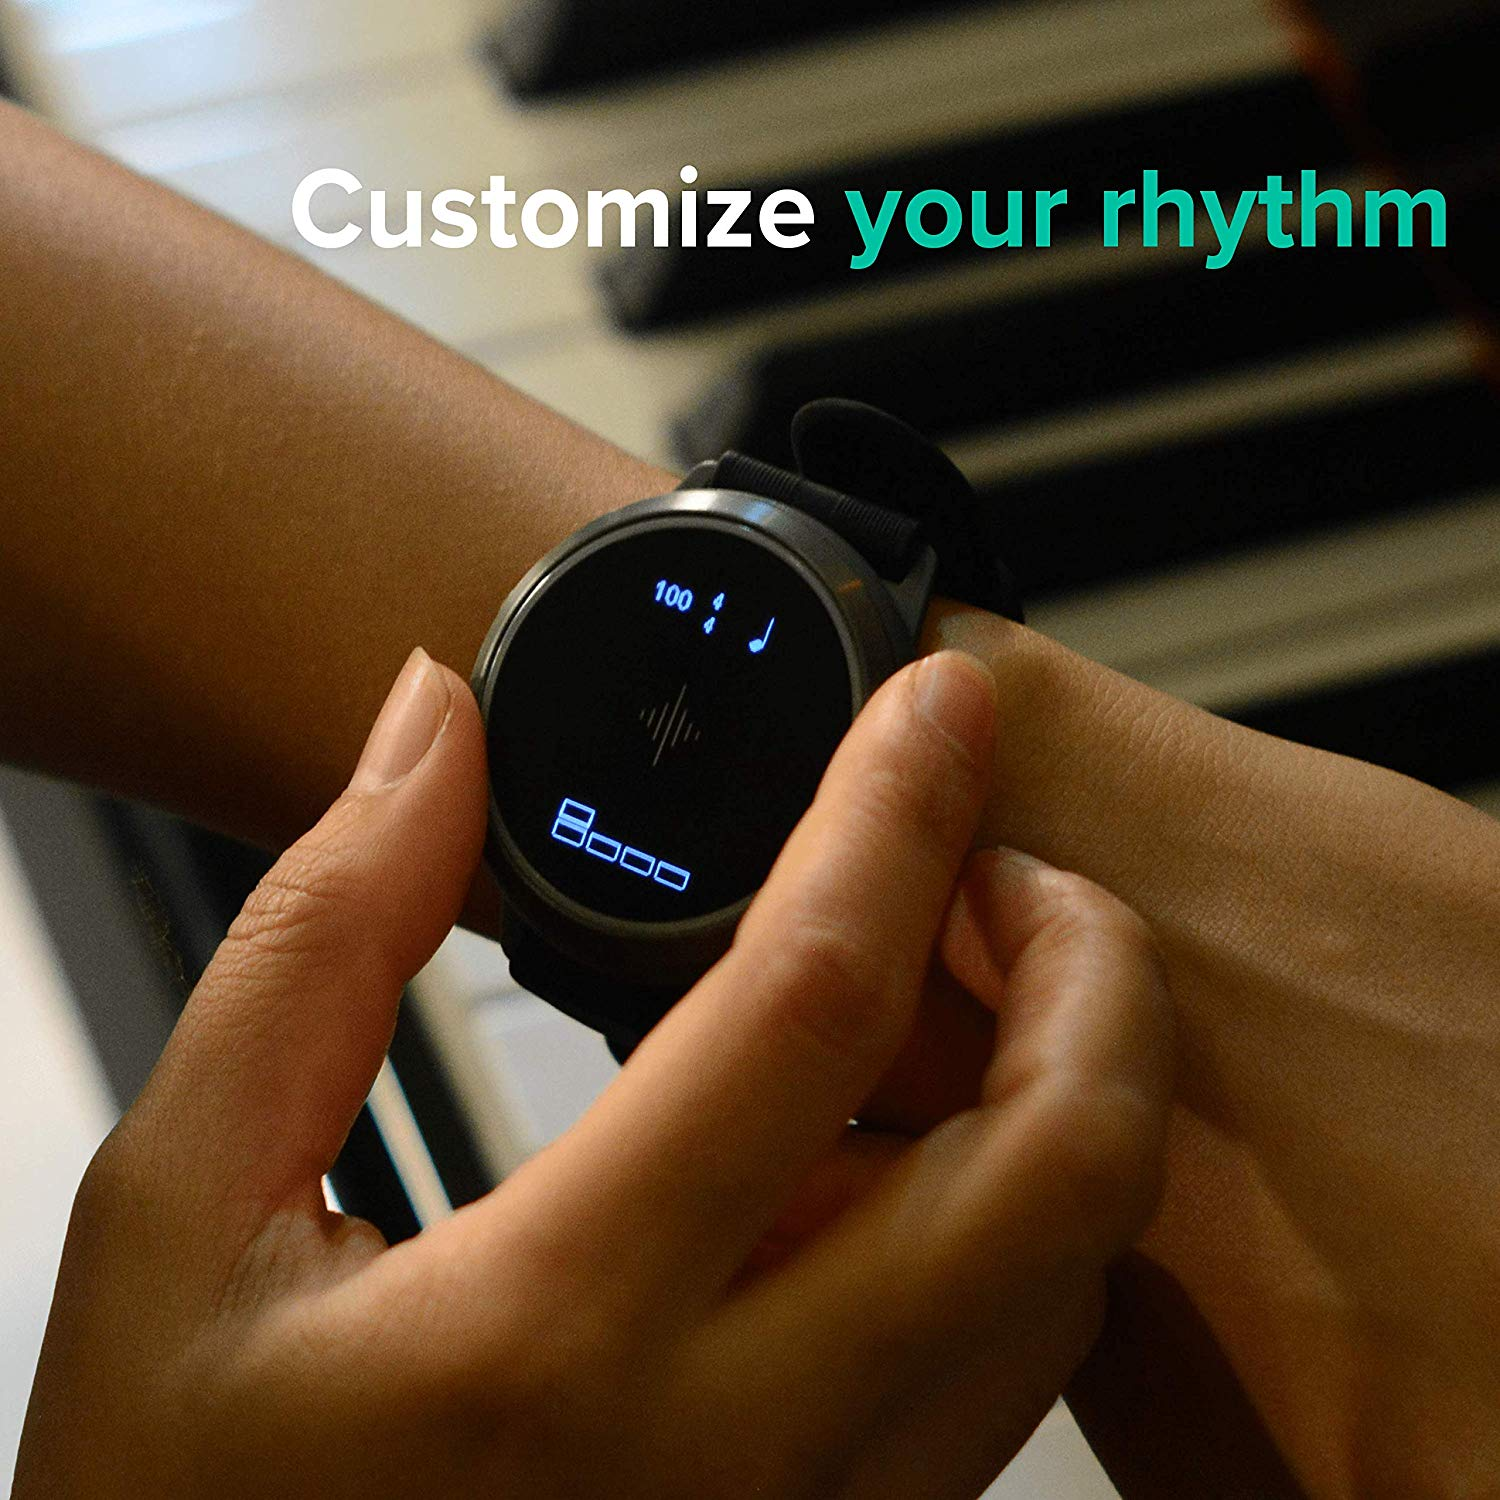 Showing the Customization for your Rhythm on The Soundbrenner Core 4-in-1 Wearable Music Tool